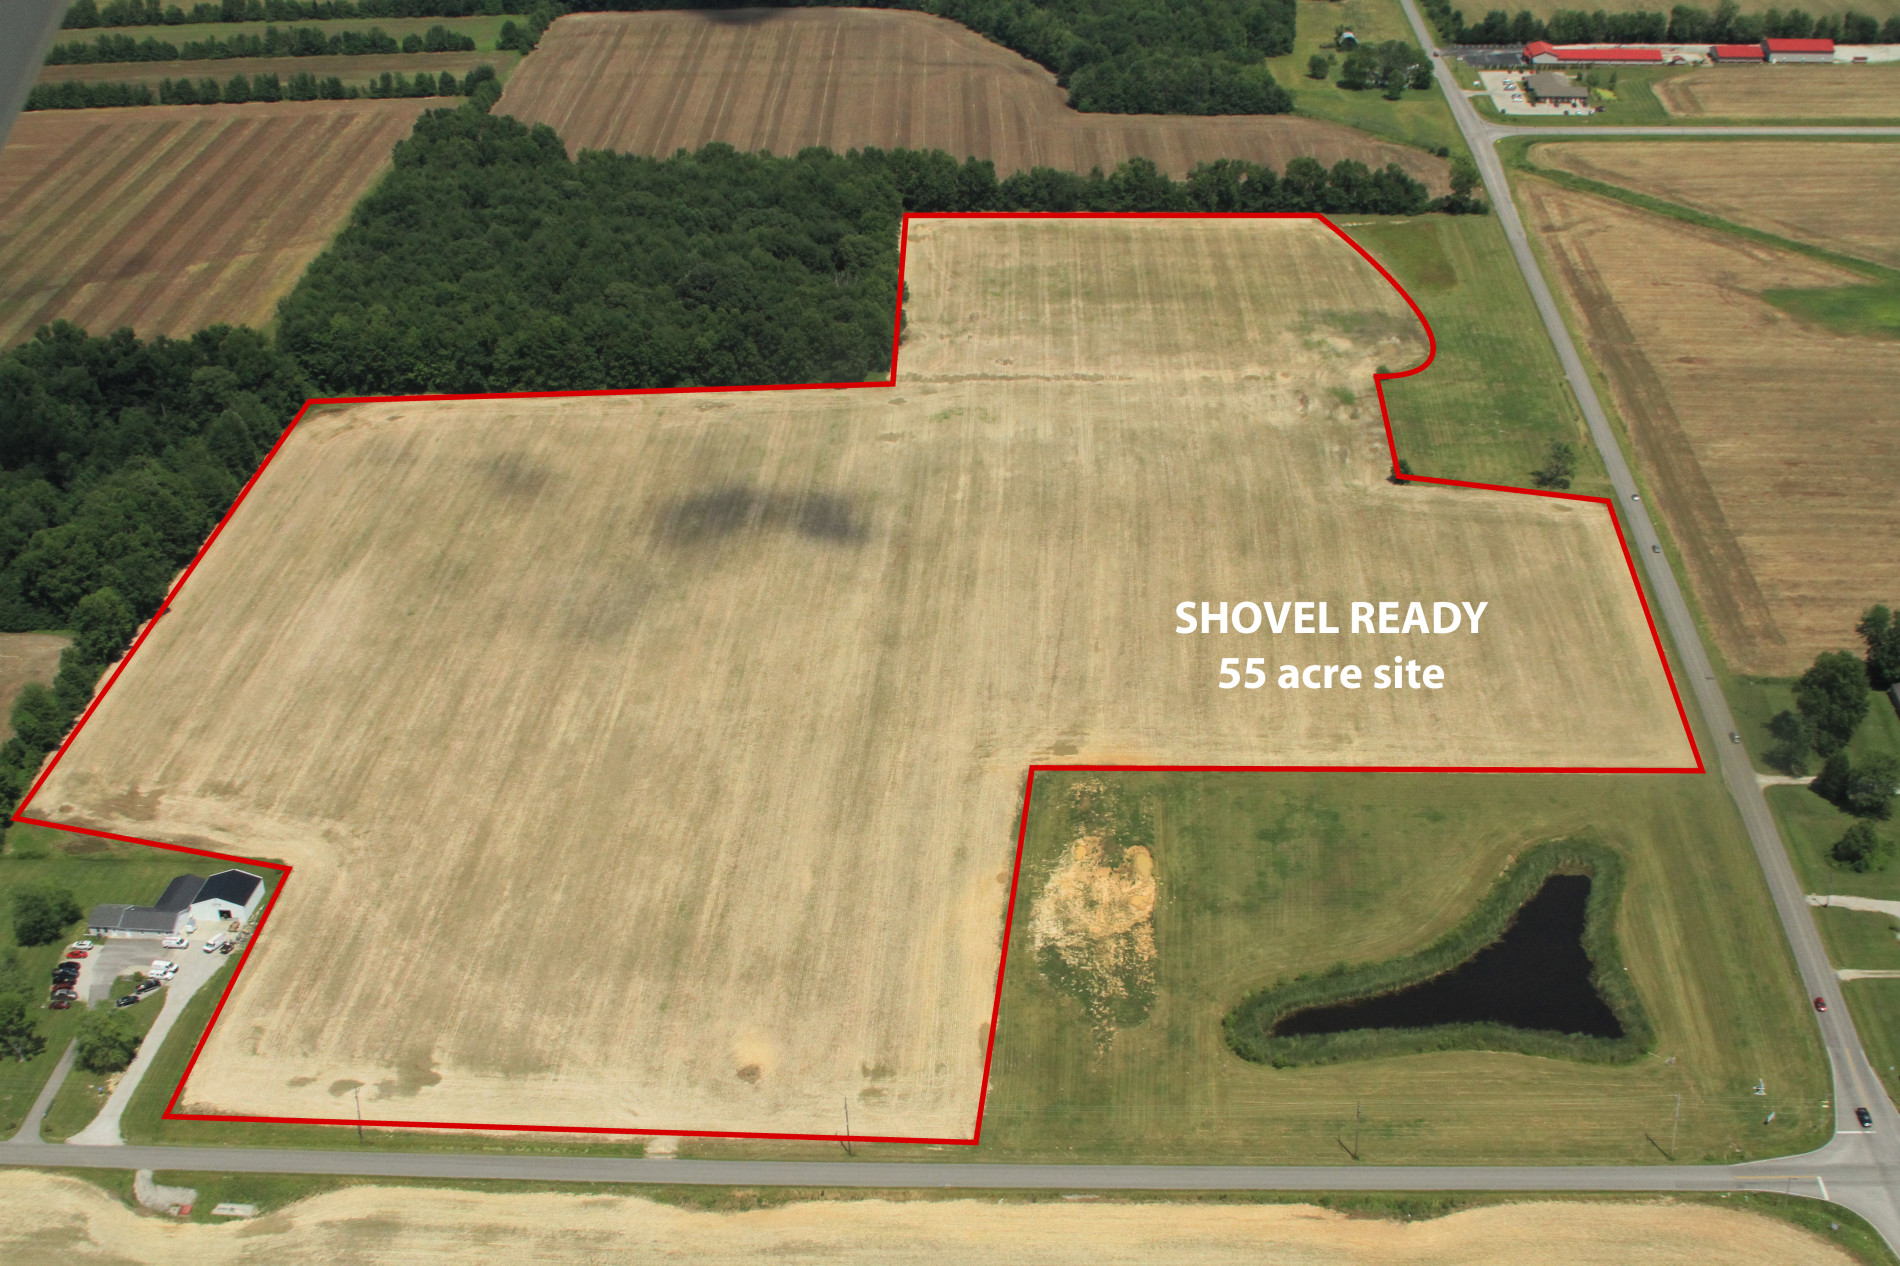 Madison Indiana Jefferson County Industrial Development Shovel Ready Site Relocate Locate Your Business